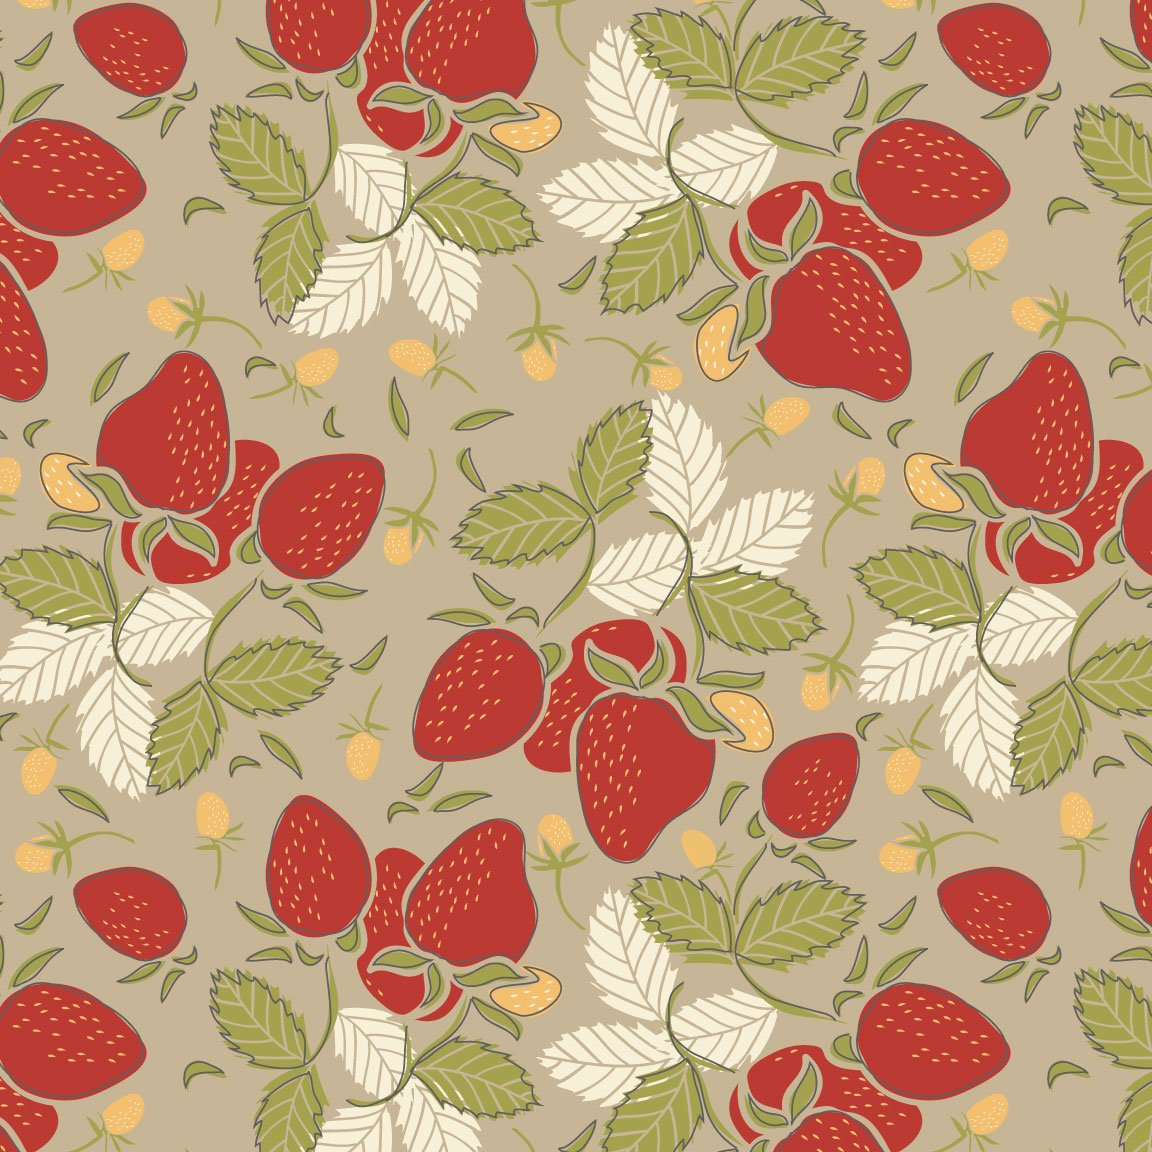 Vintage Berries Big Strawberries on Tan 161101-2TA